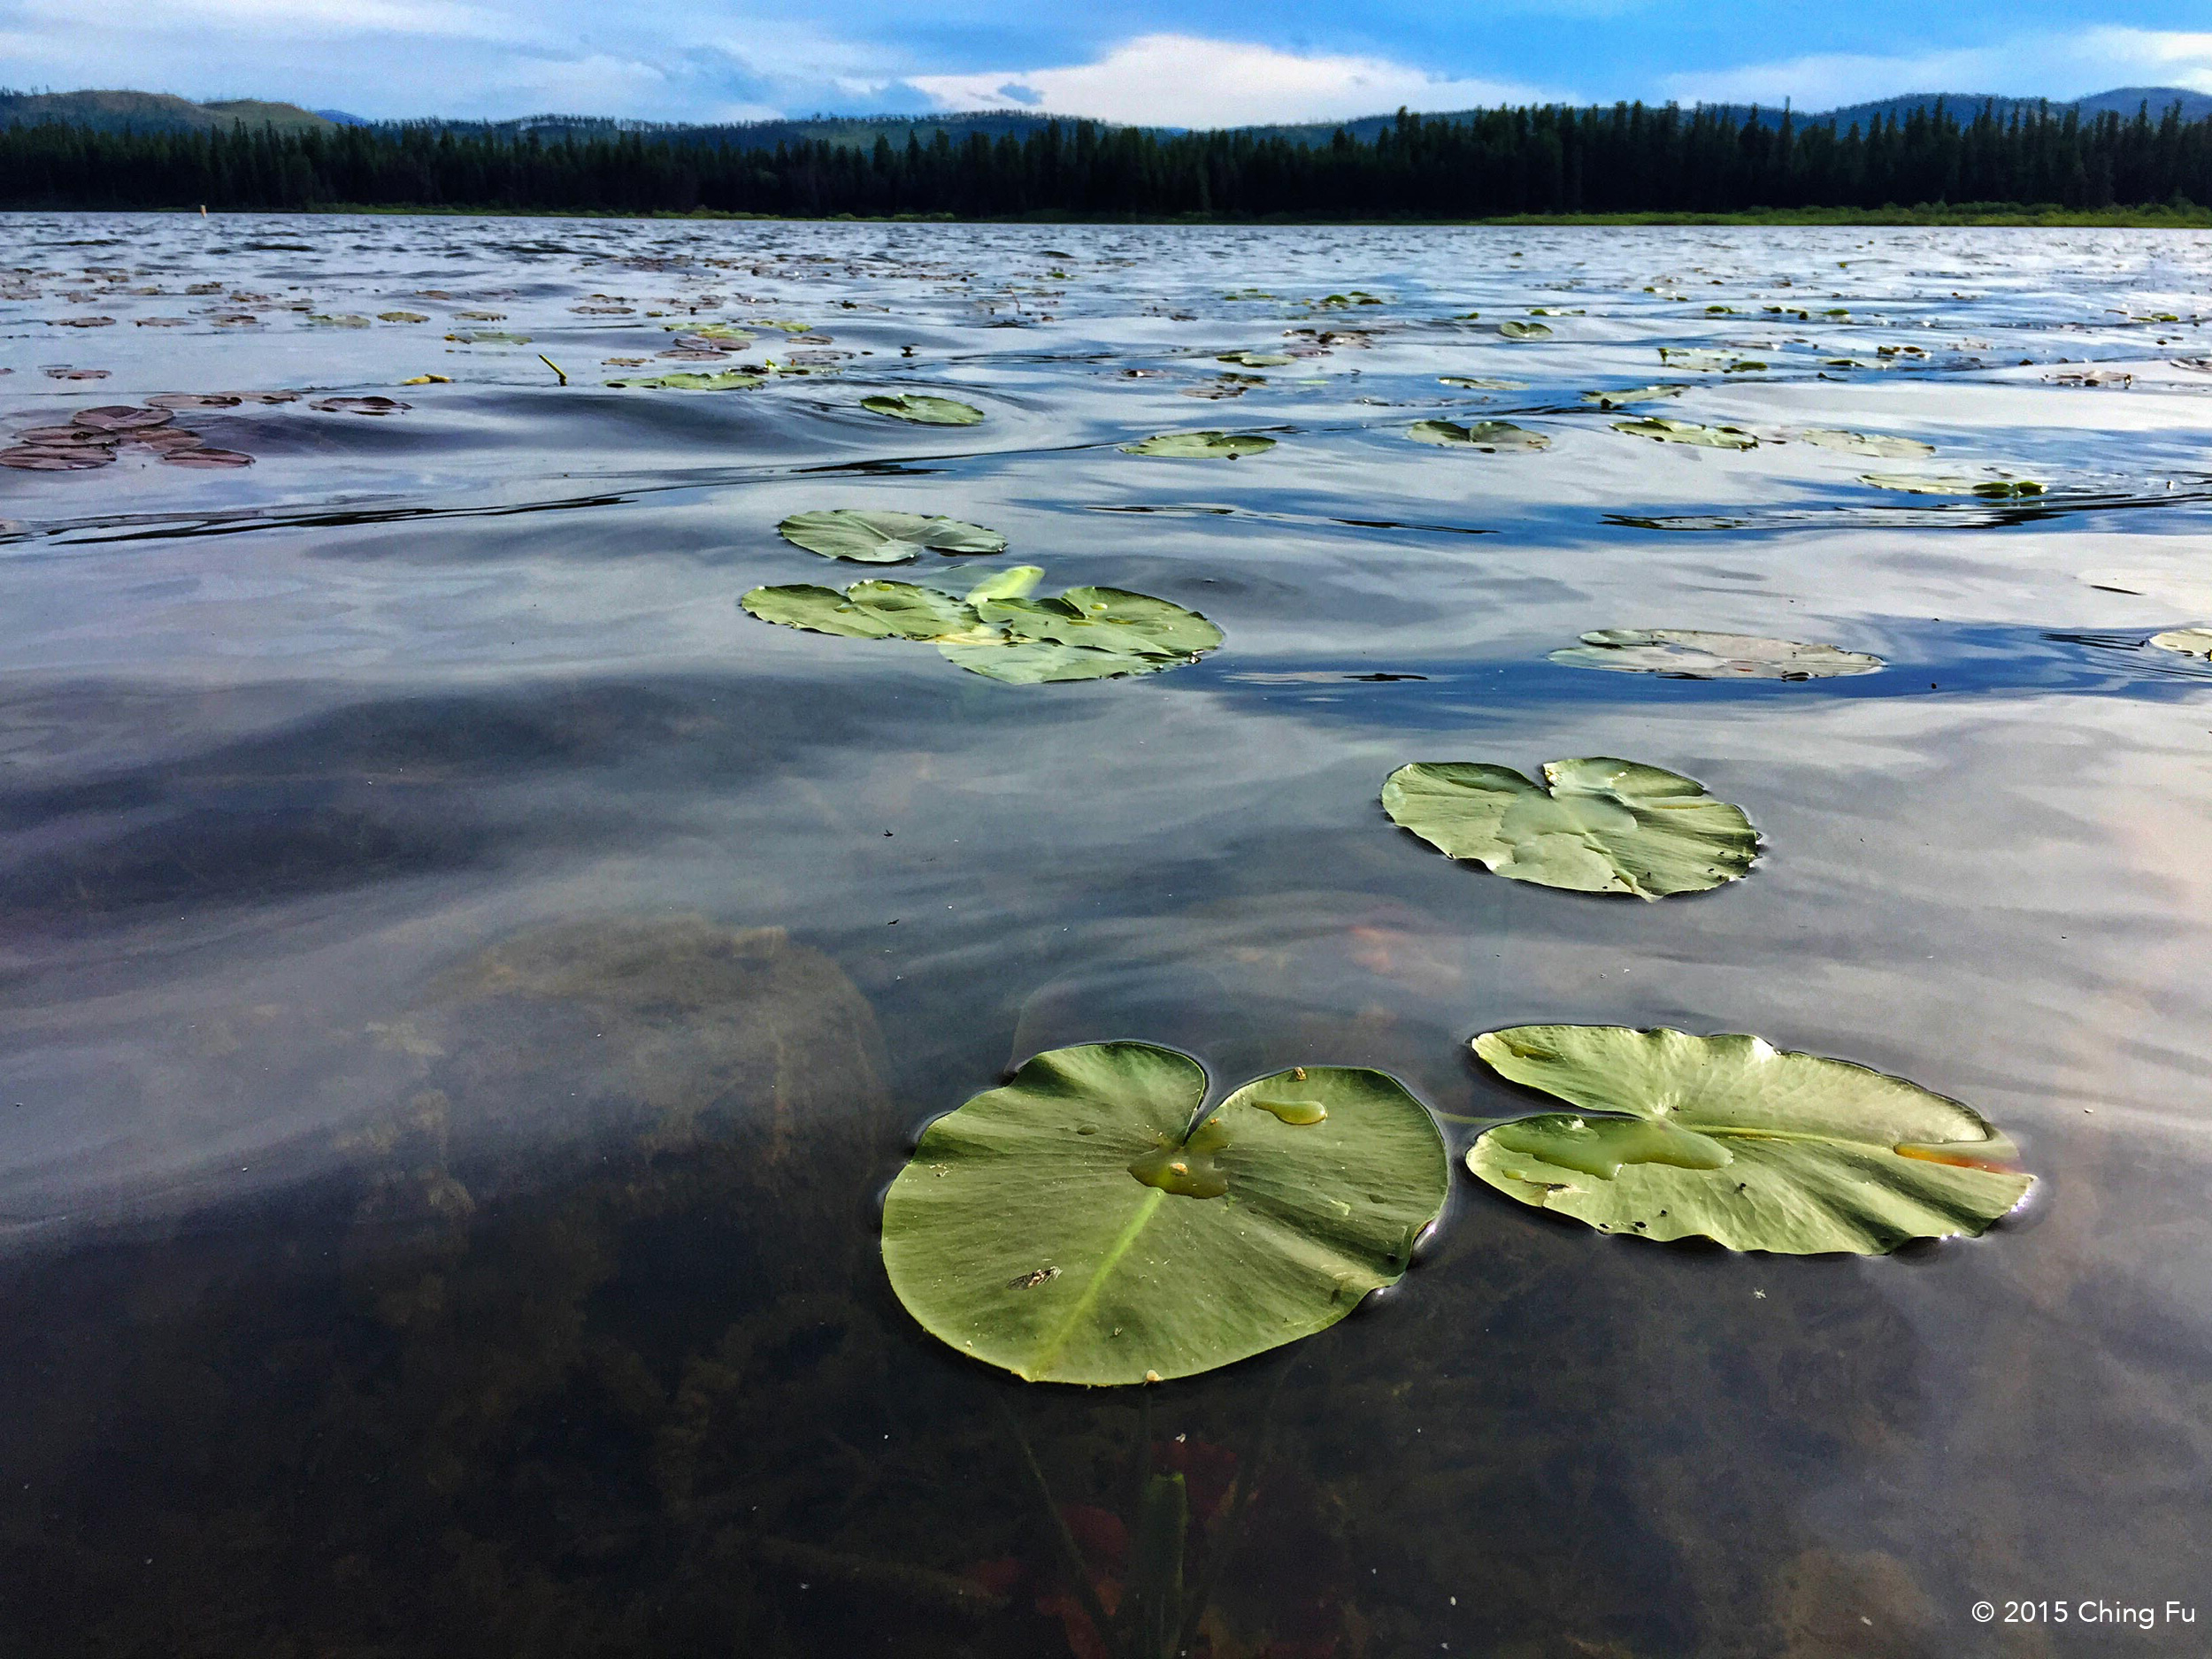 The canoe trail comes out into Seeley Lake on the northern end of the lake and it's covered in these lotus-like leaves.